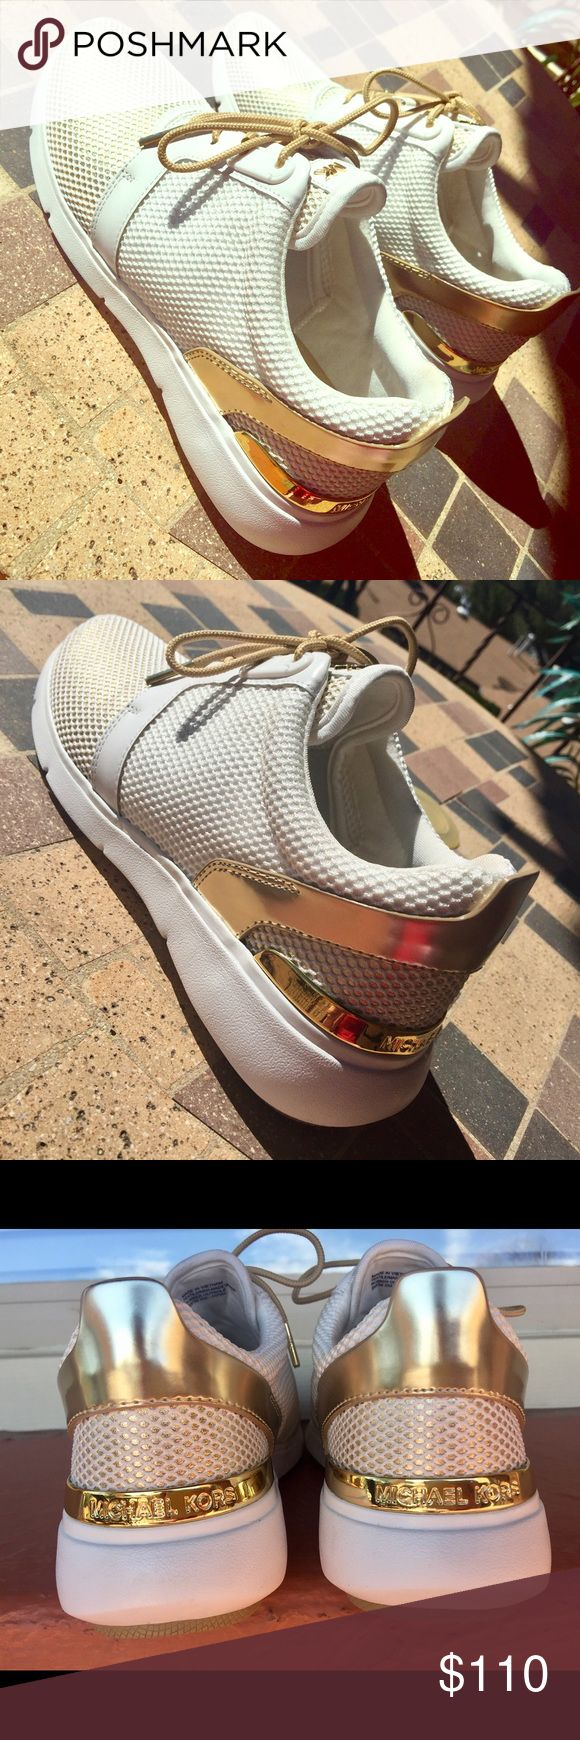 Michael Kors white and gold shoes Size 8 women's. Brand new. Worn only once, in perfect condition. Michael Kors Shoes Sneakers